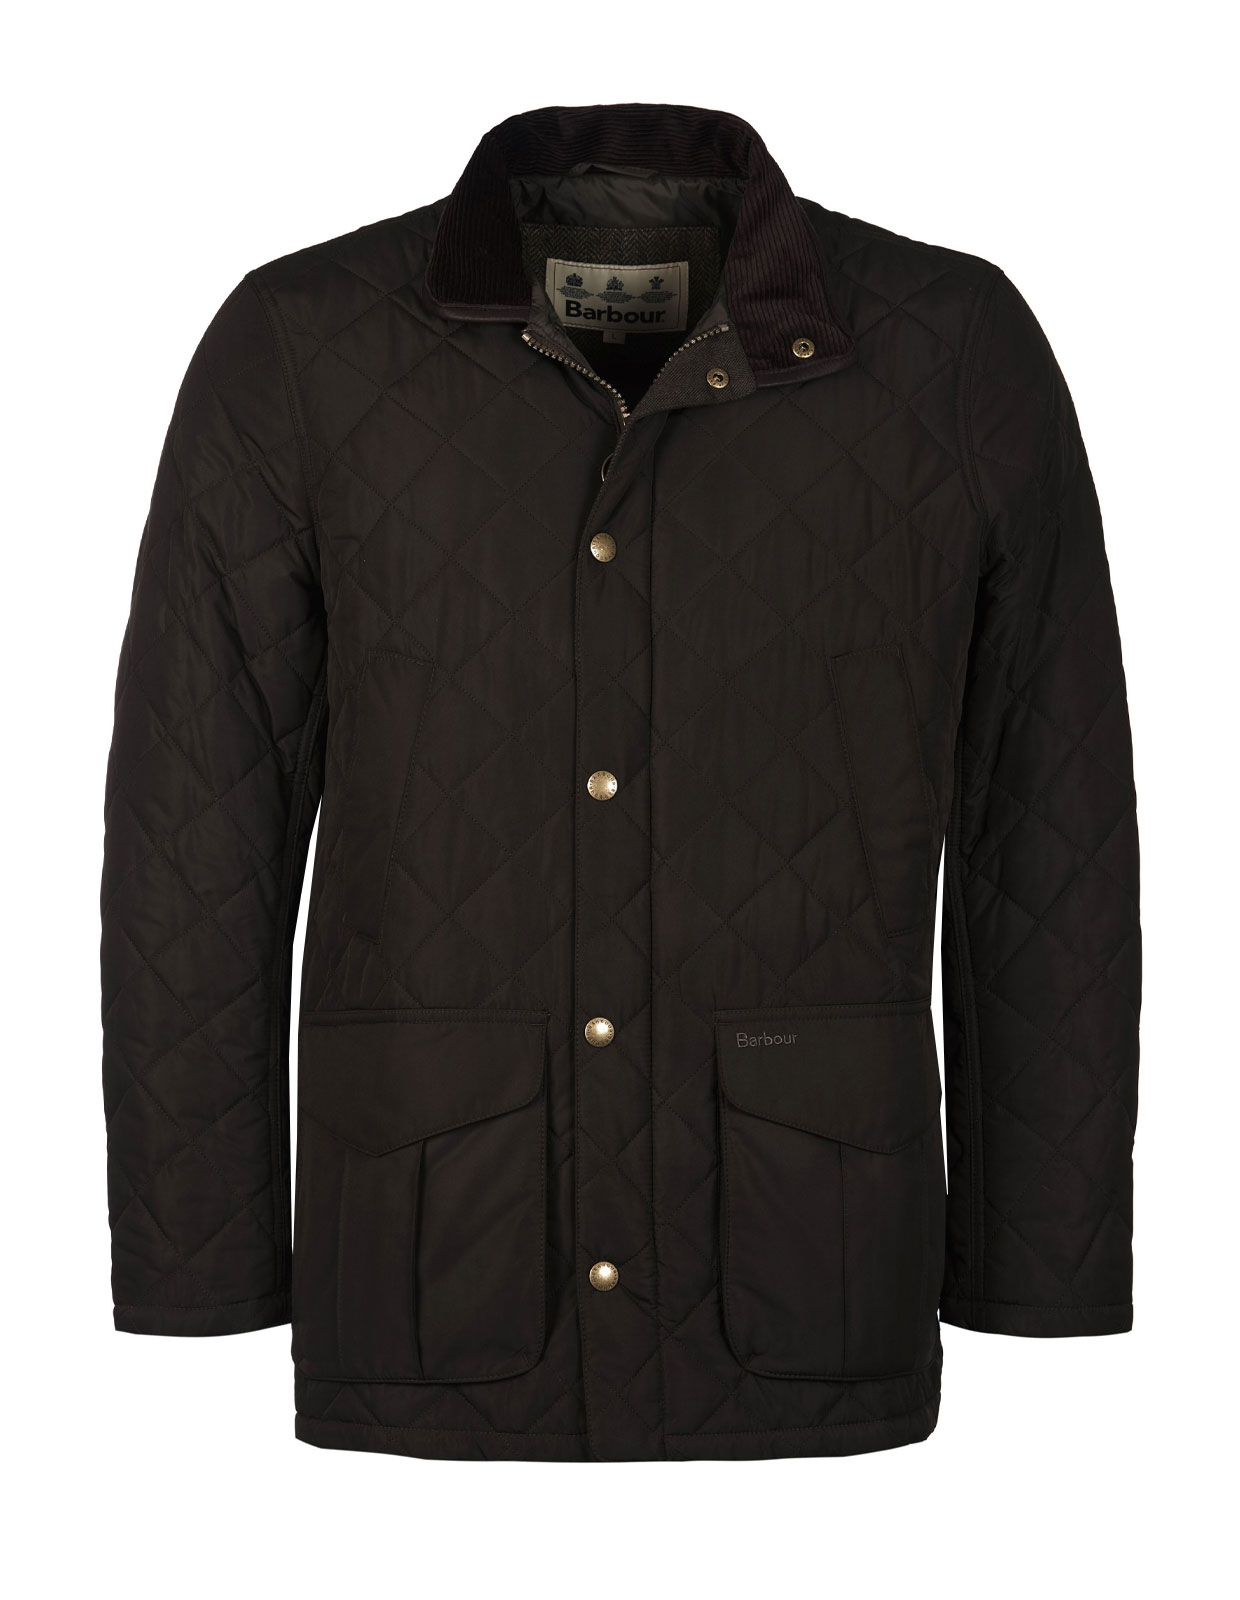 Men's Barbour Devon Jacket Olive